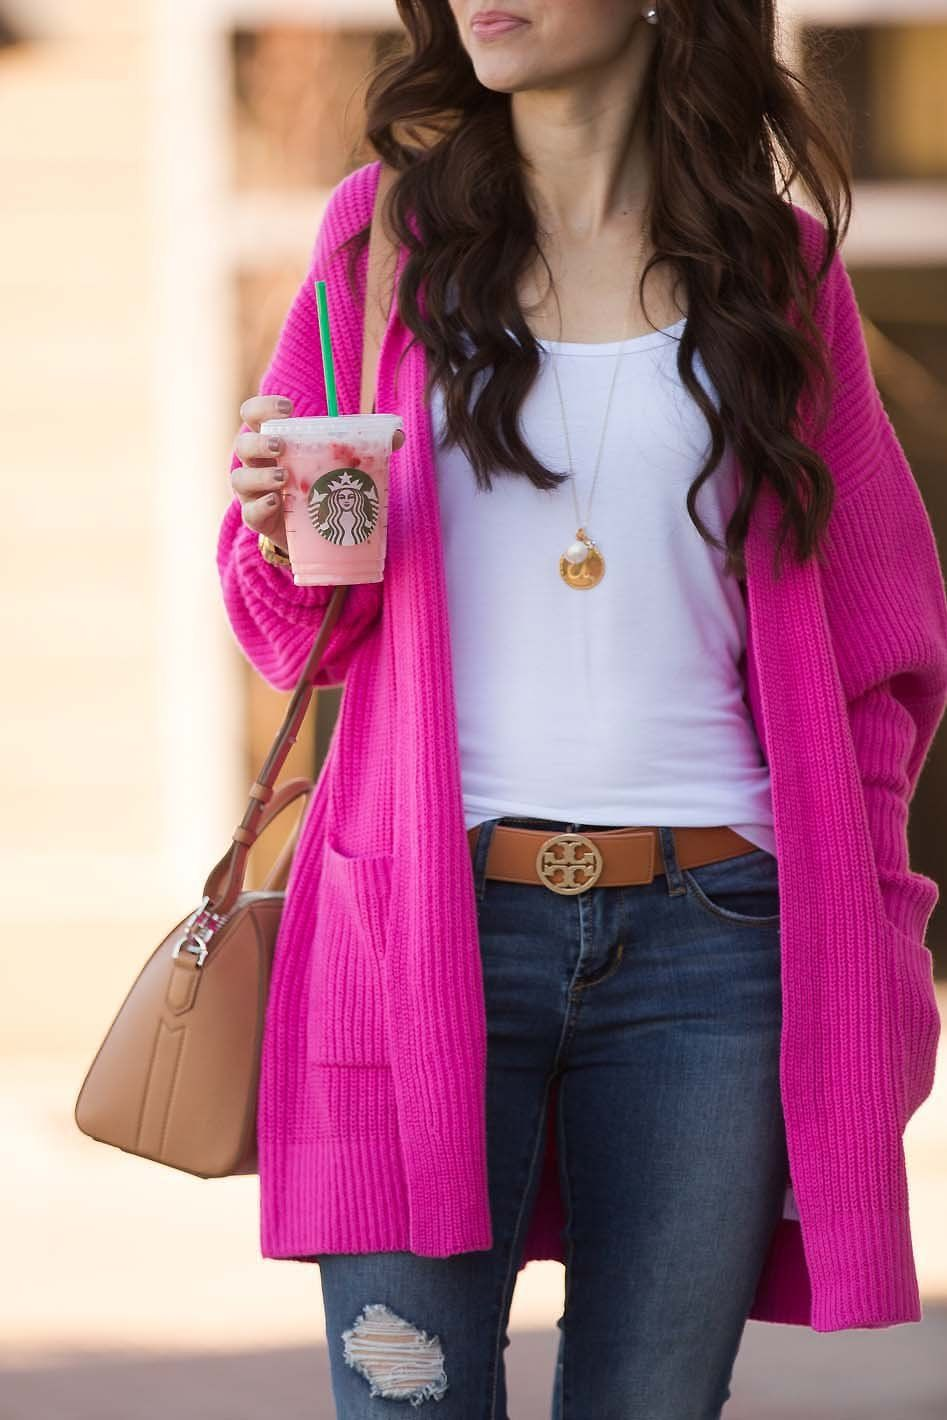 b72d978a3a5 Hot pink long cardigan - tan booties - Tory Burch belt - Givenchy mini  Antigona - Moon   Lola Dalton necklace